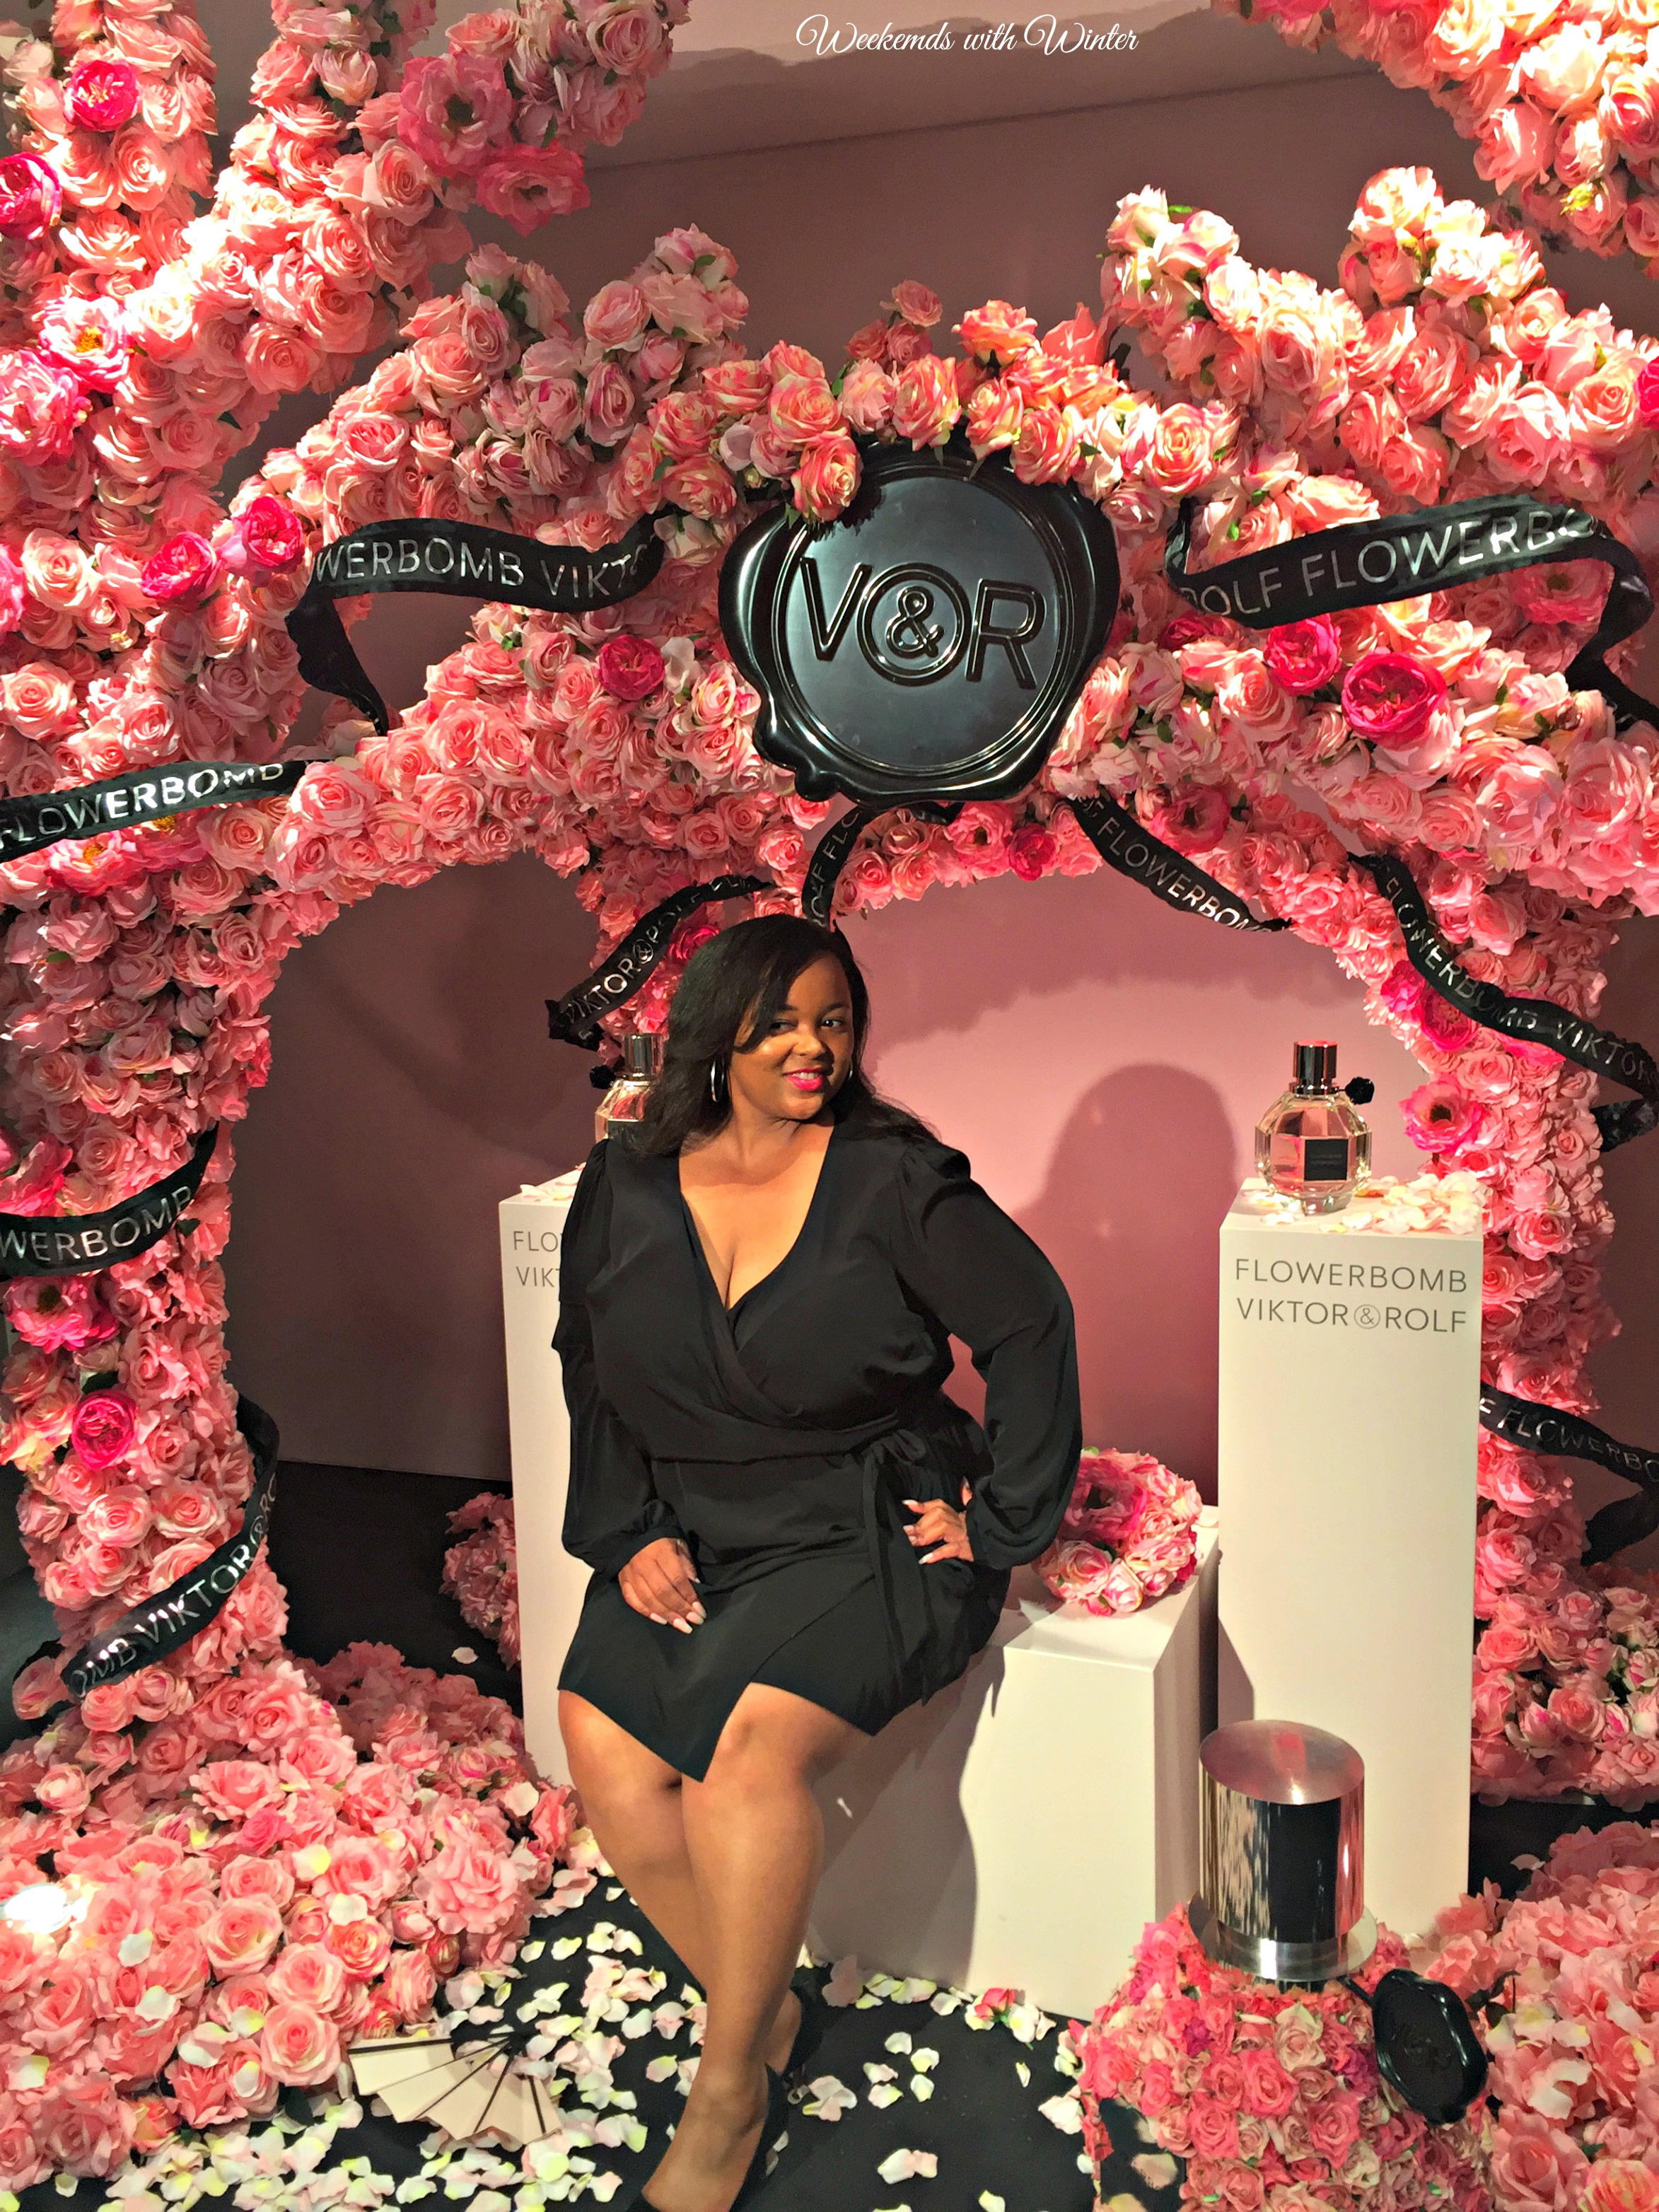 I love taking a picture in the Viktor and Rolf photo booth! I swear the backdrops get more beautiful every year!